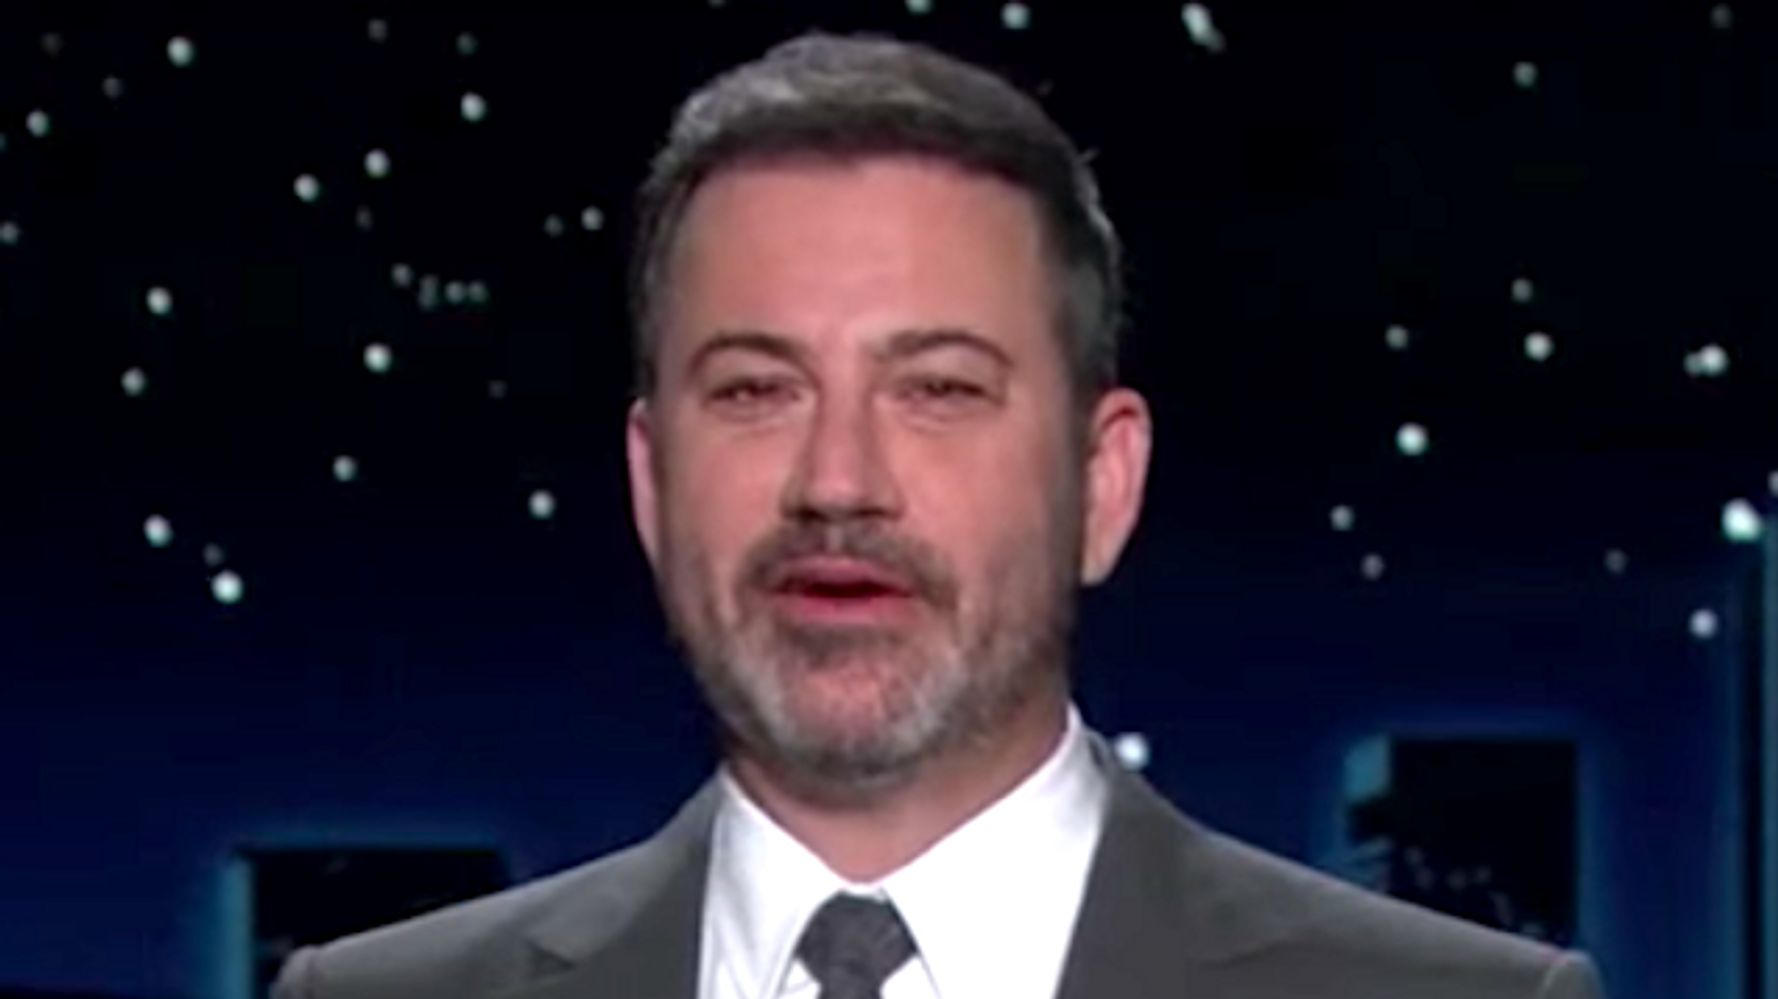 Jimmy Kimmel Spots A Rare Moment Of Honesty From Donald Trump